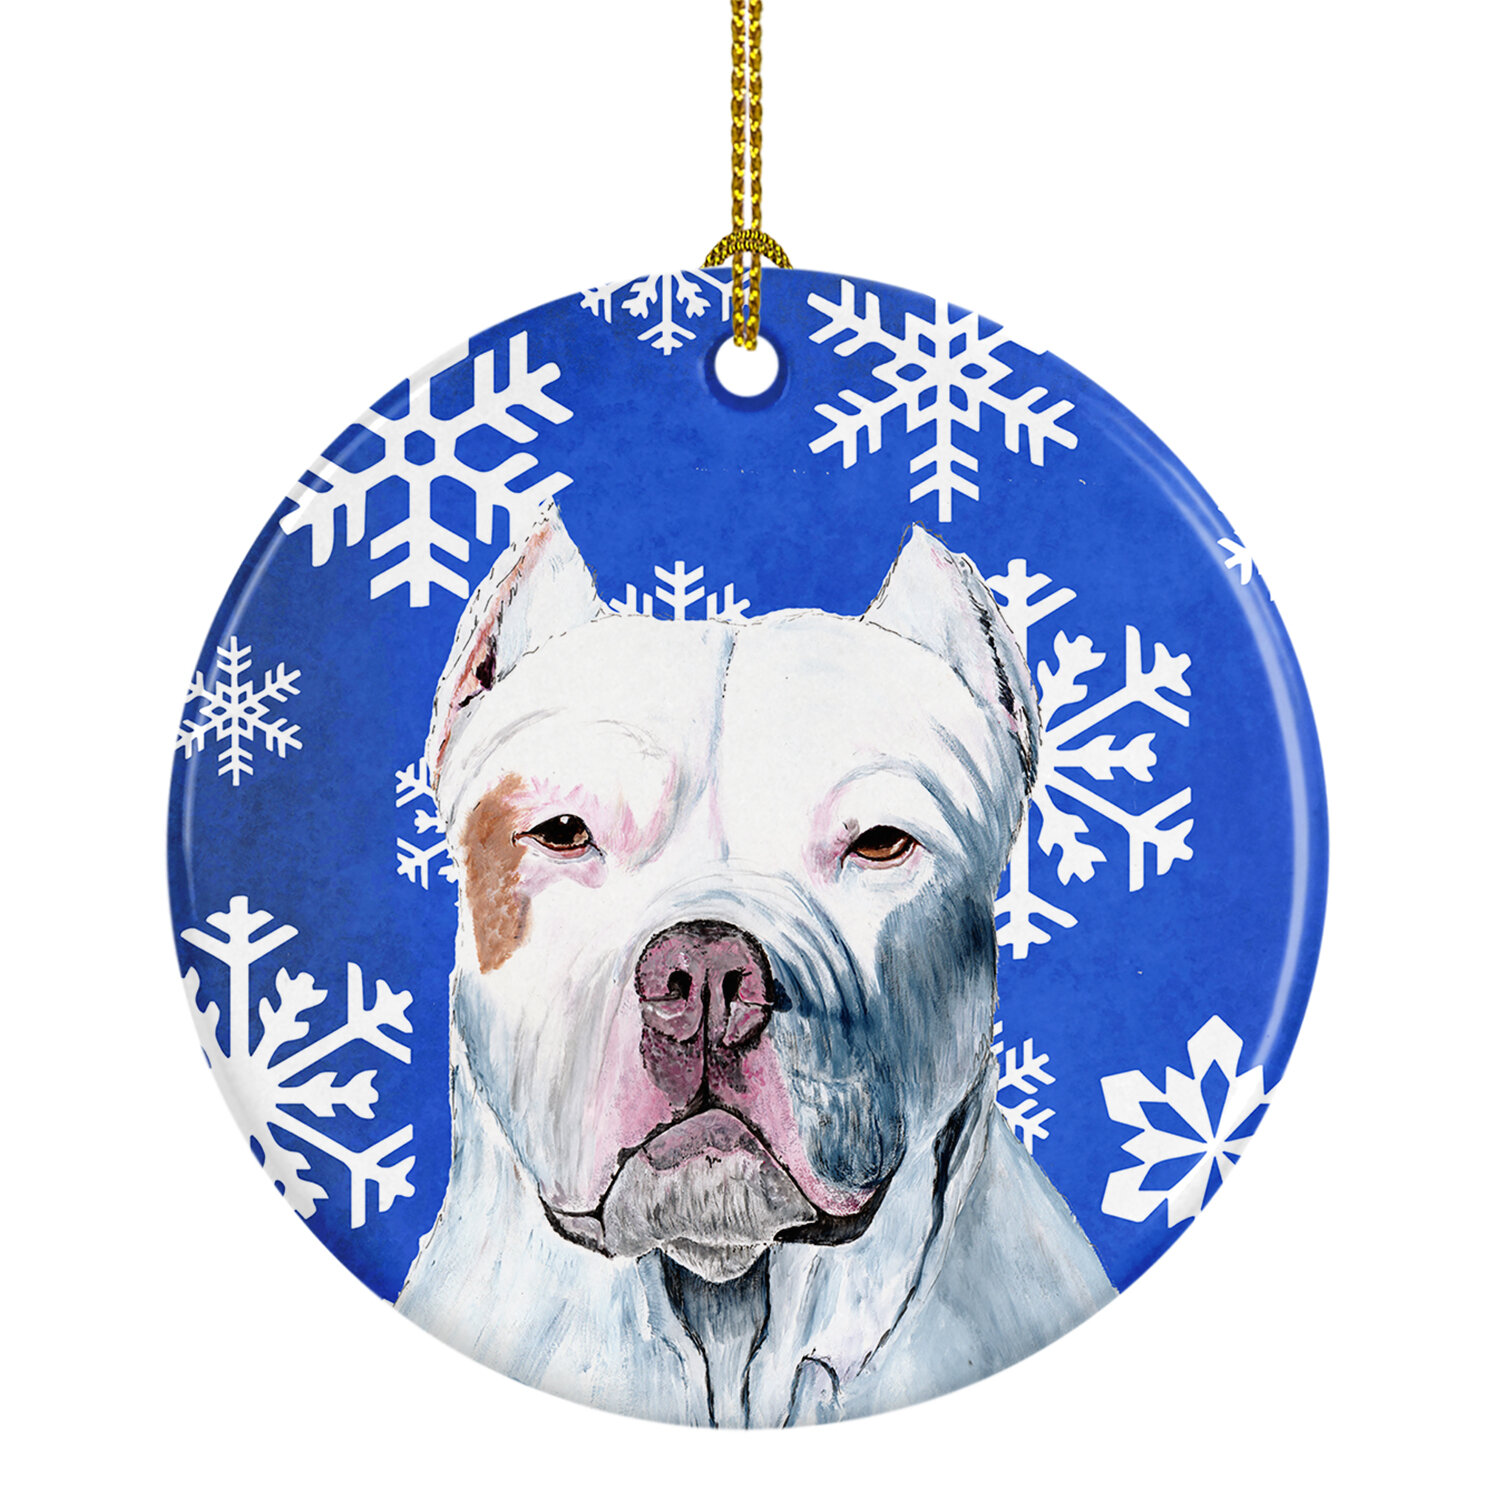 Blue Pit Bull Christmas Snowflake Dog Ornament Shatter Proof Ball Home Garden Holiday Seasonal Décor